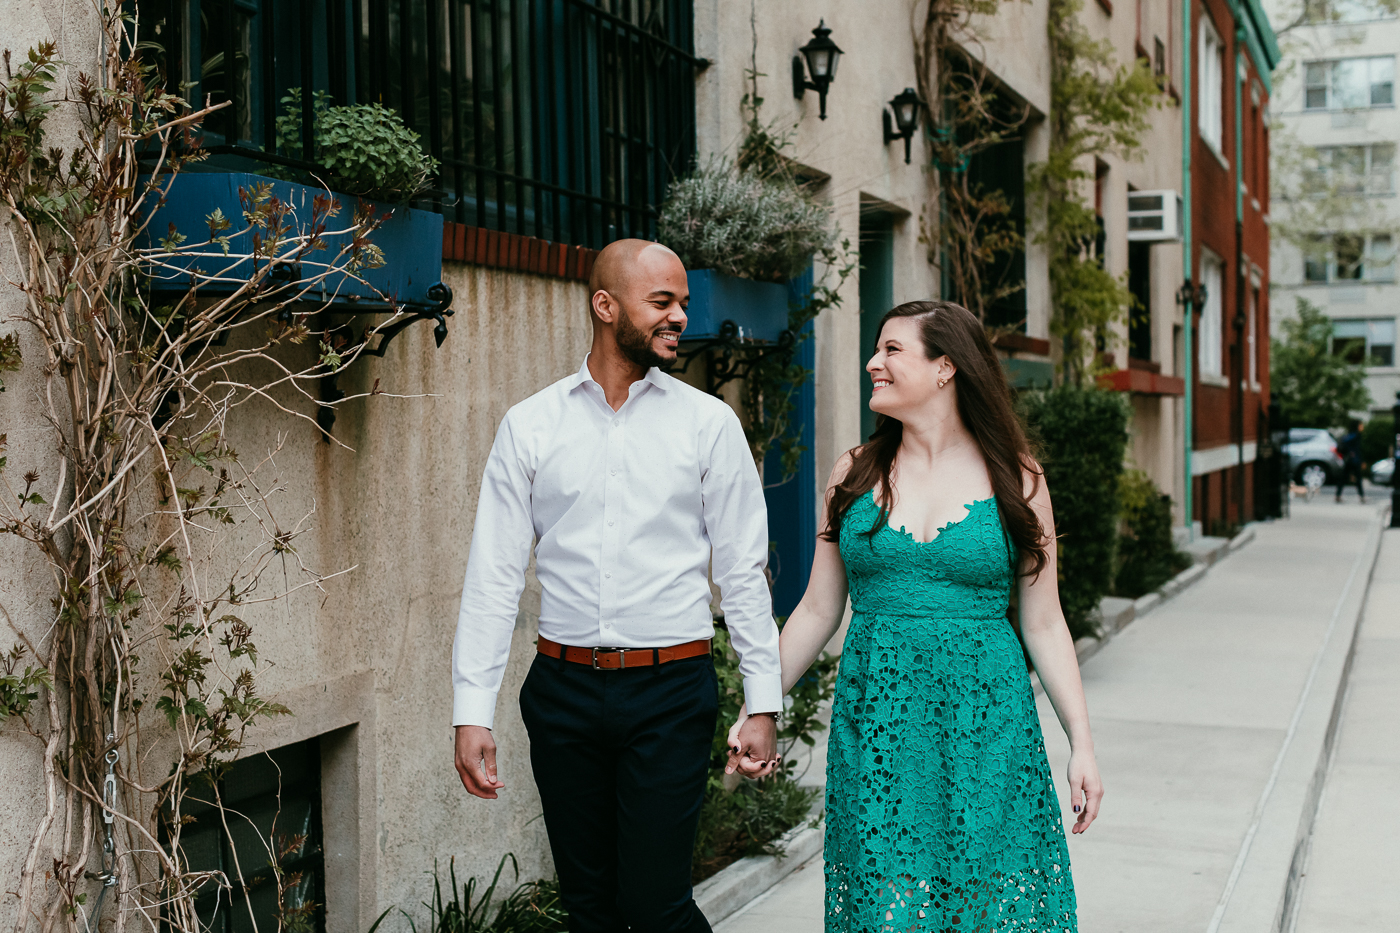 West-Village-Engagement-Photos-NYC-Wedding-Photographer-21.JPG